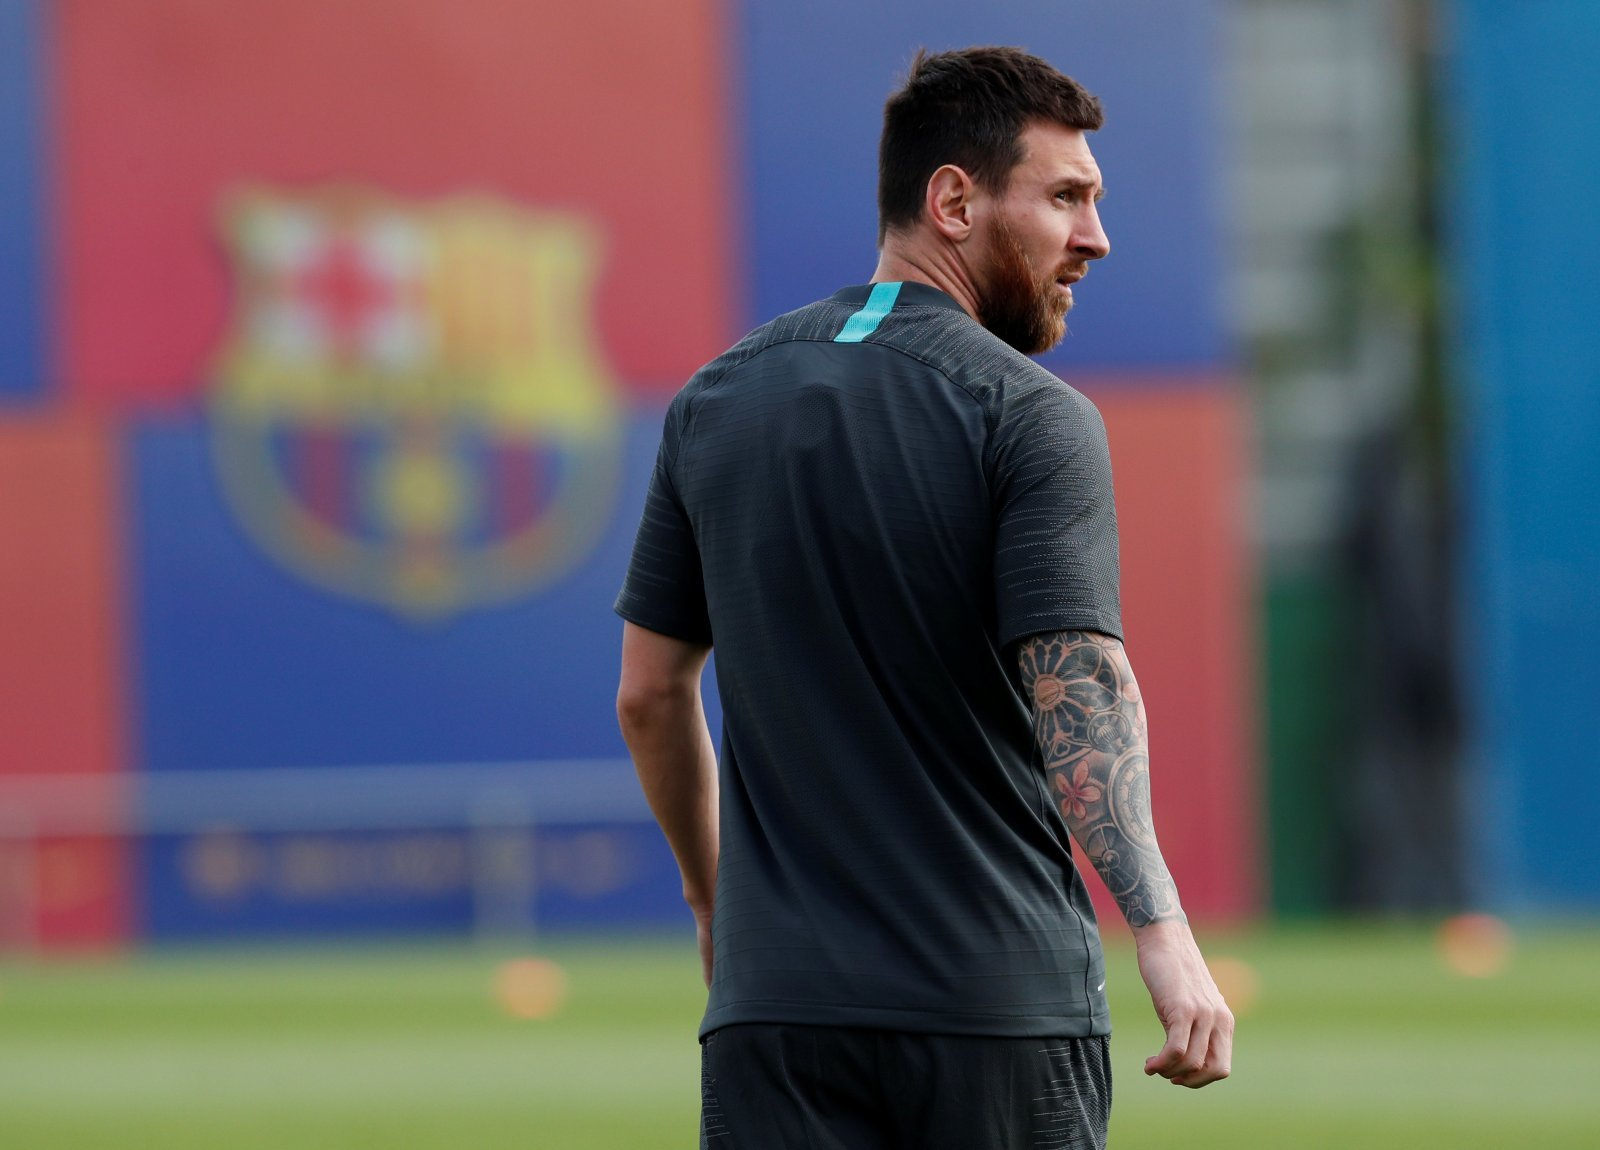 Barcelona: Lionel Messi urges club to get rid of three players